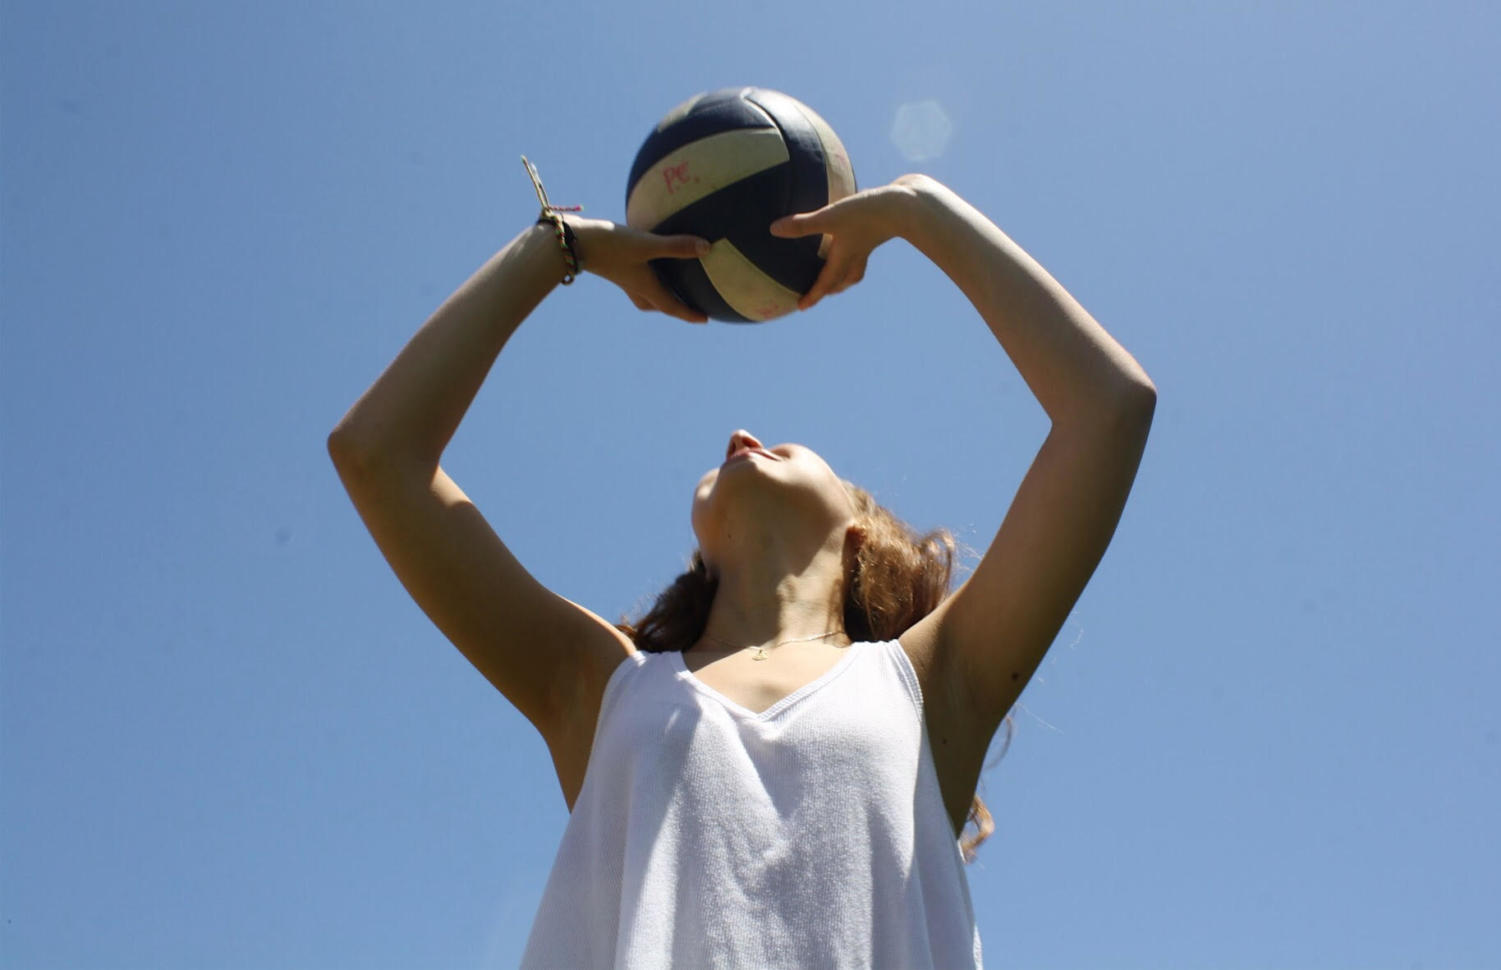 Some students play other sports in the summer in order to stay in shape in a fun way.